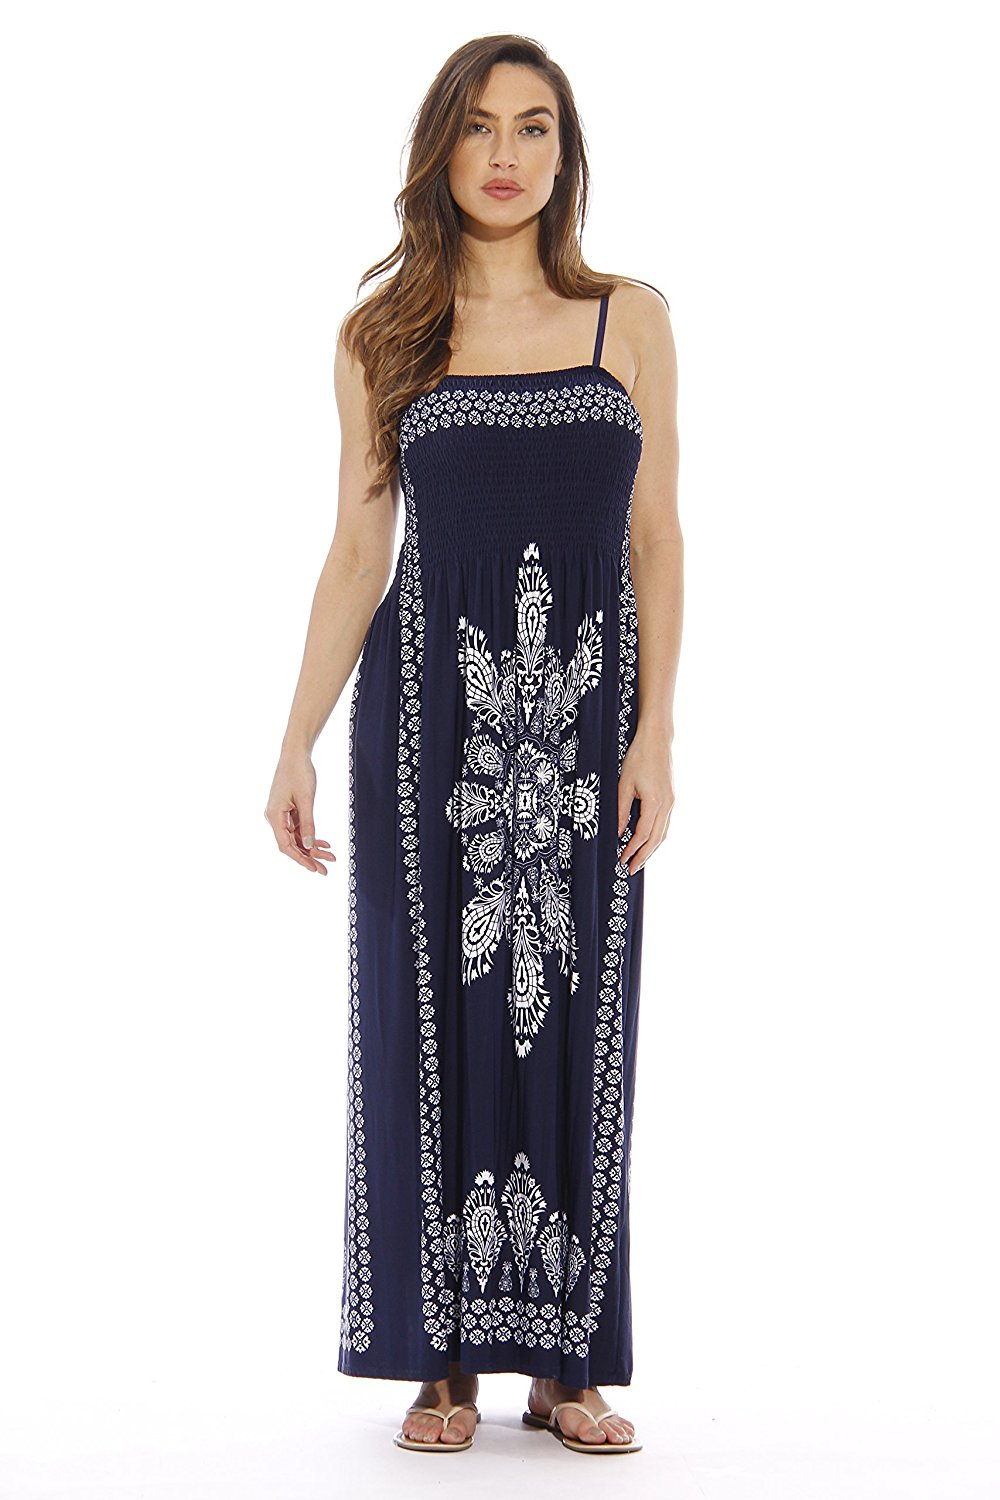 Maxi dresses in petite lengths